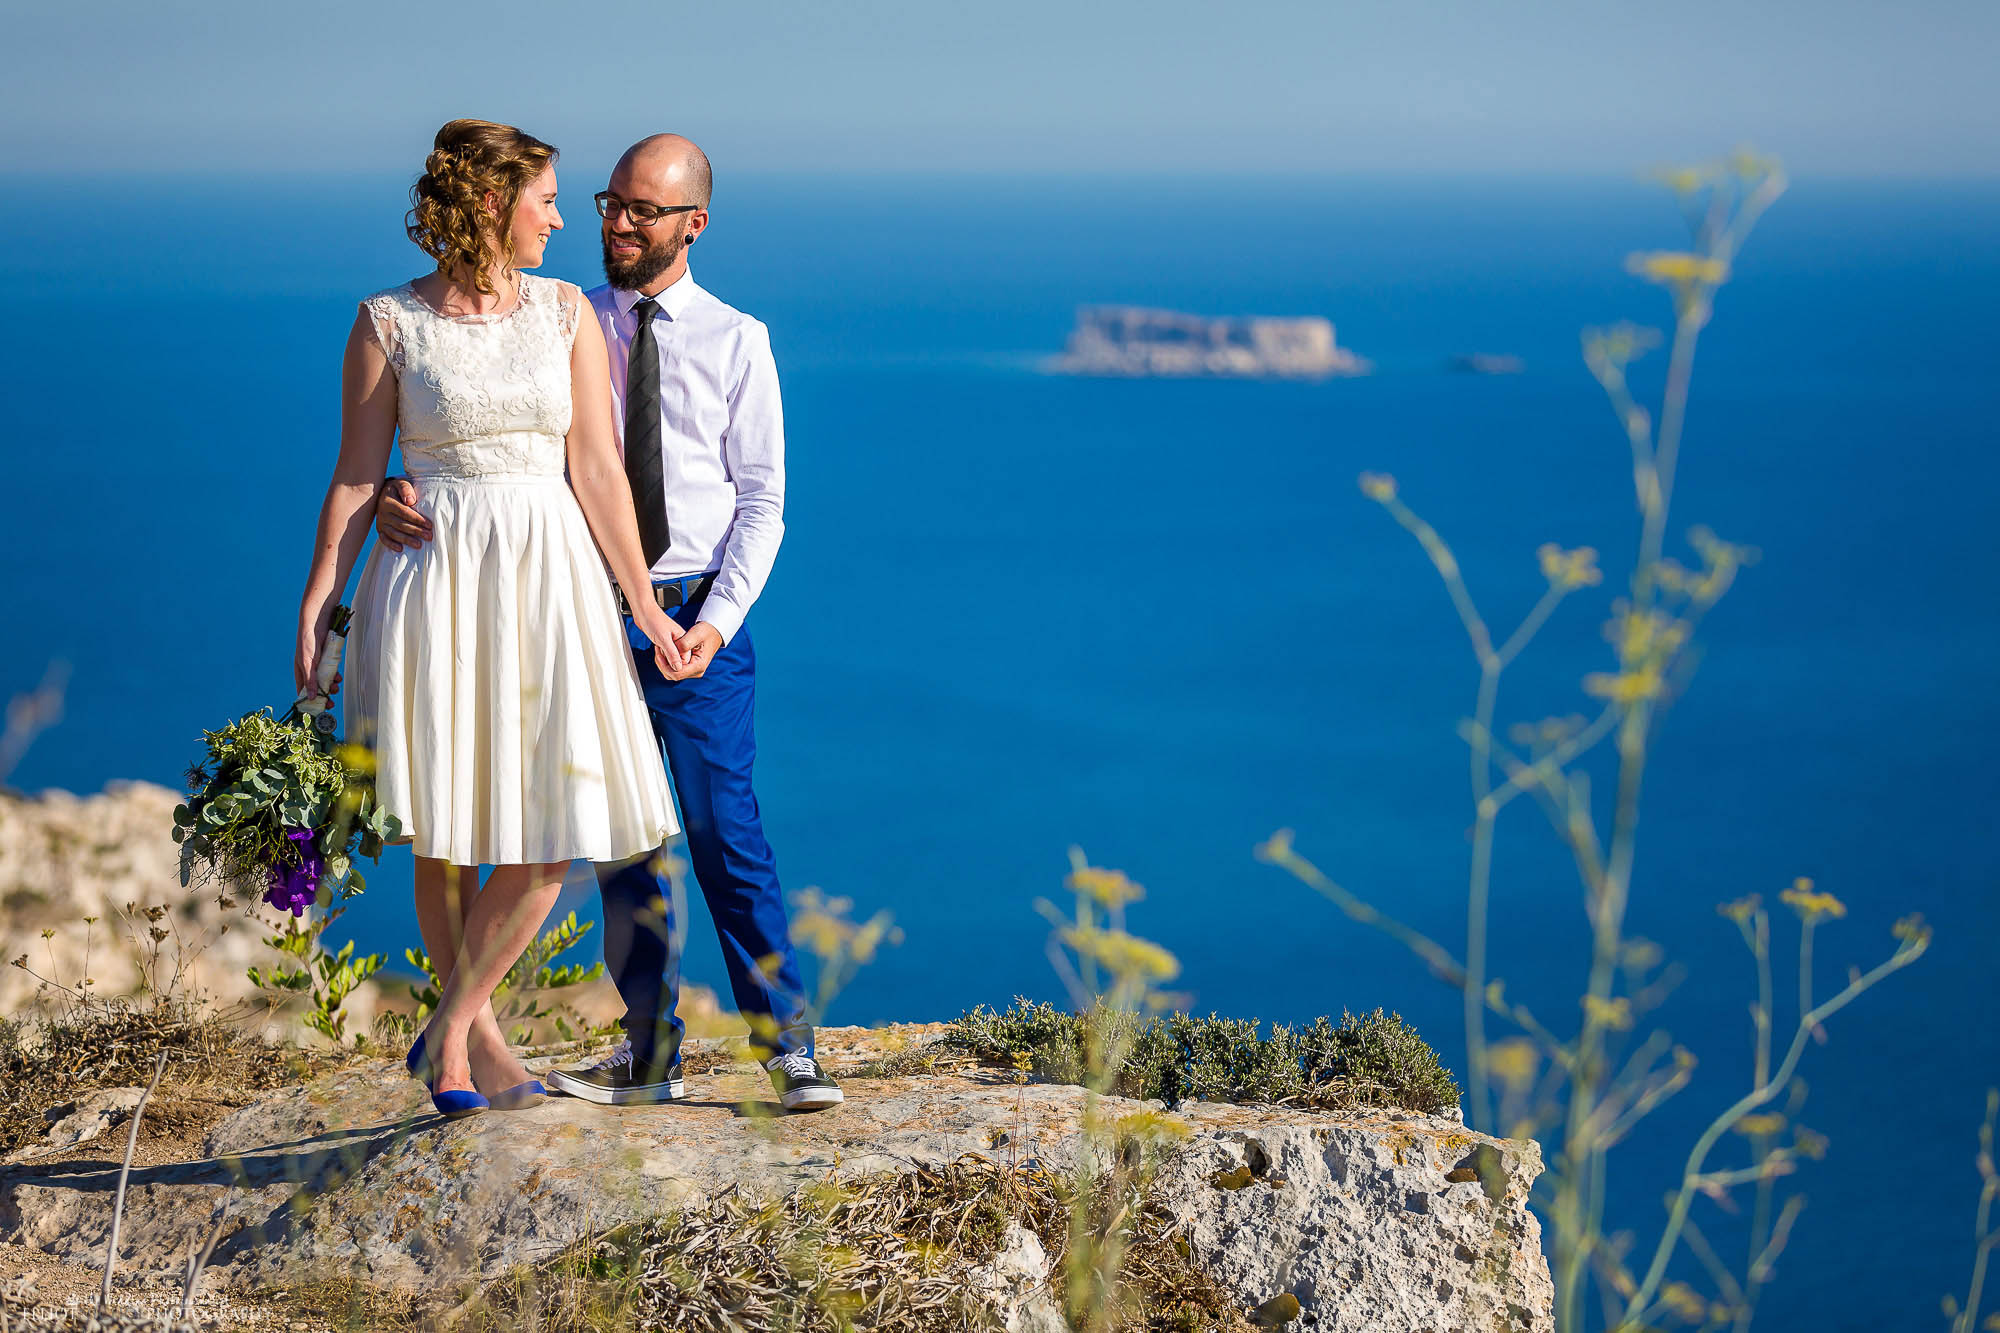 North East wedding photography. Destination couple's cliff wedding blessing.